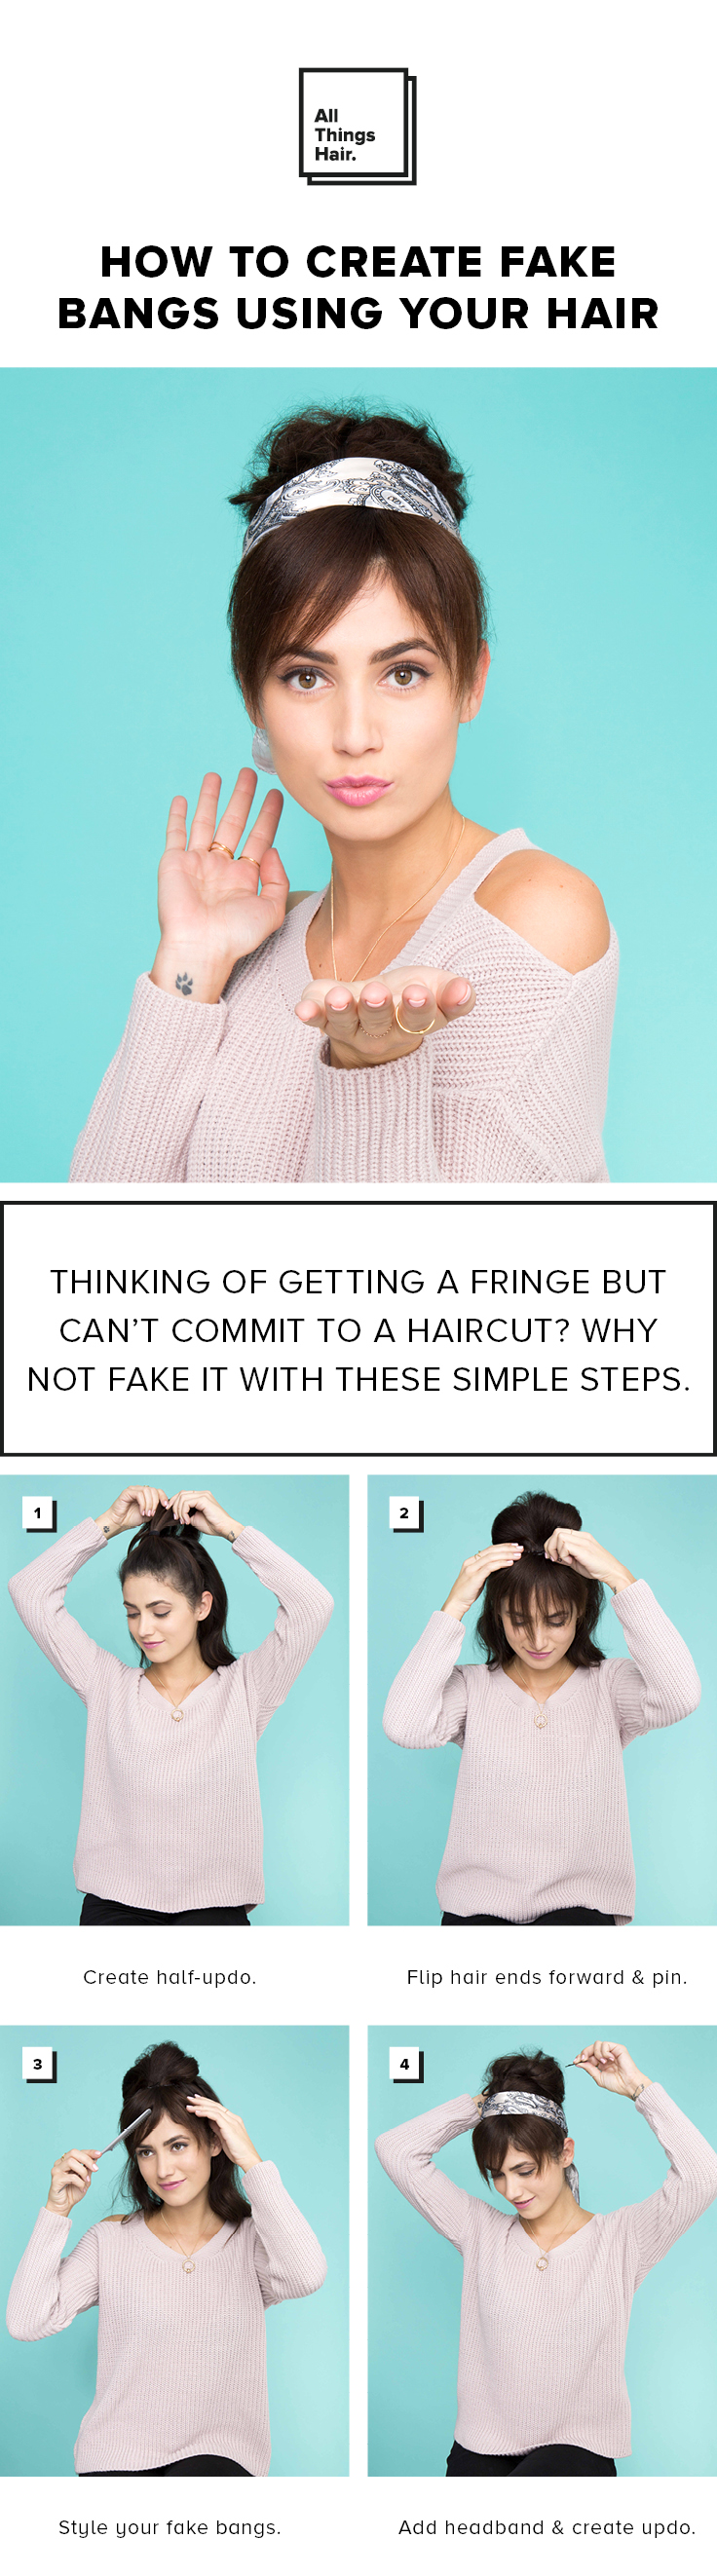 Fake Bangs Hairstyle Endearing Ready For A Bangin' New Look Here's How You Create Fake Bangs With